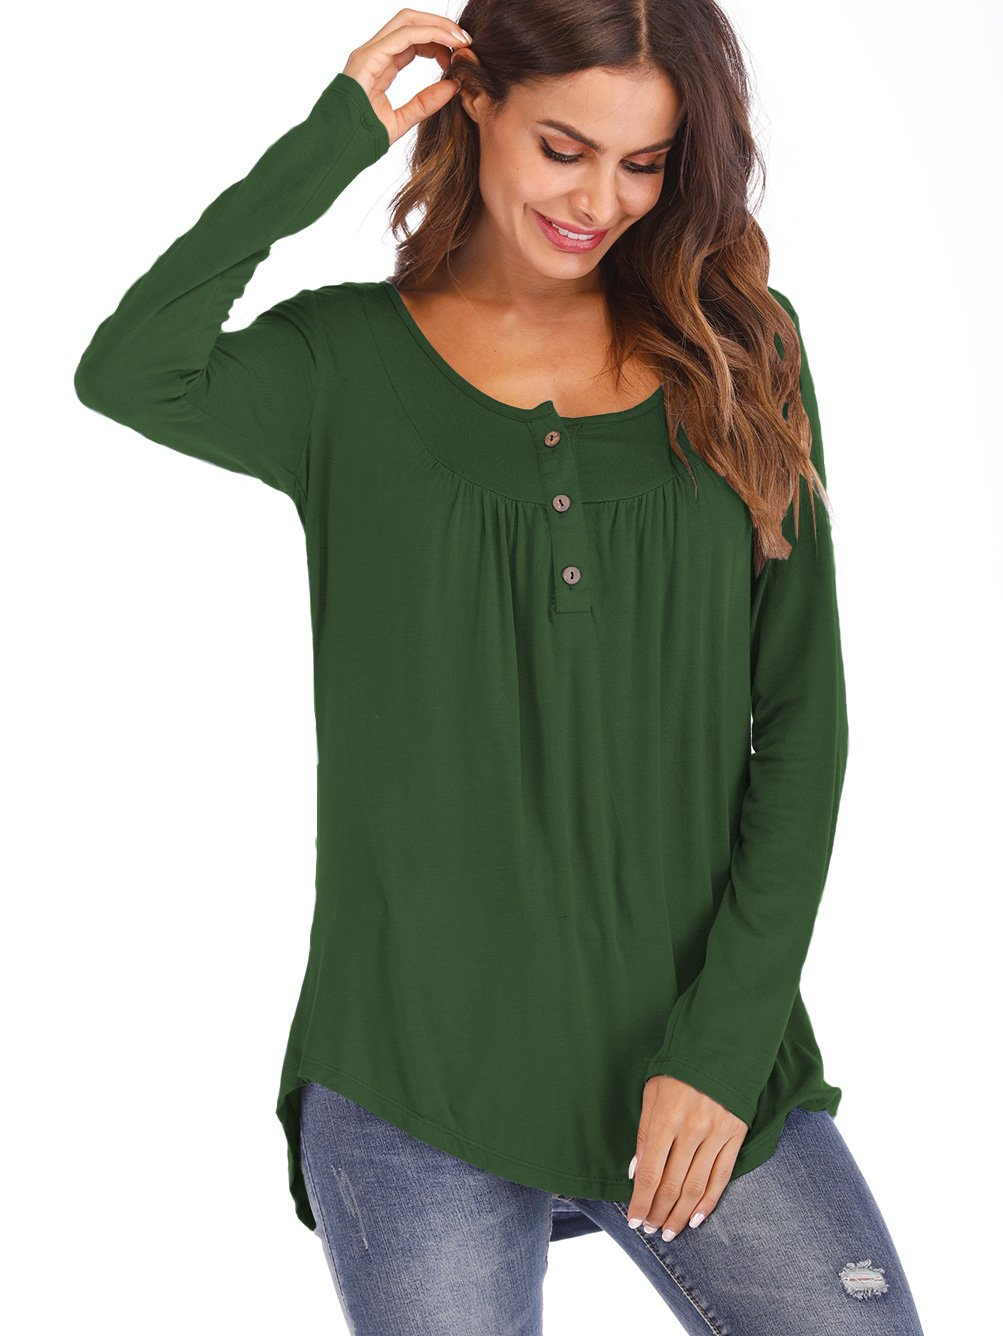 Famulily Women's Long Sleeve Henley V Neck Buttons up Blouse Pleated Tunic Shirt #2 Green XL